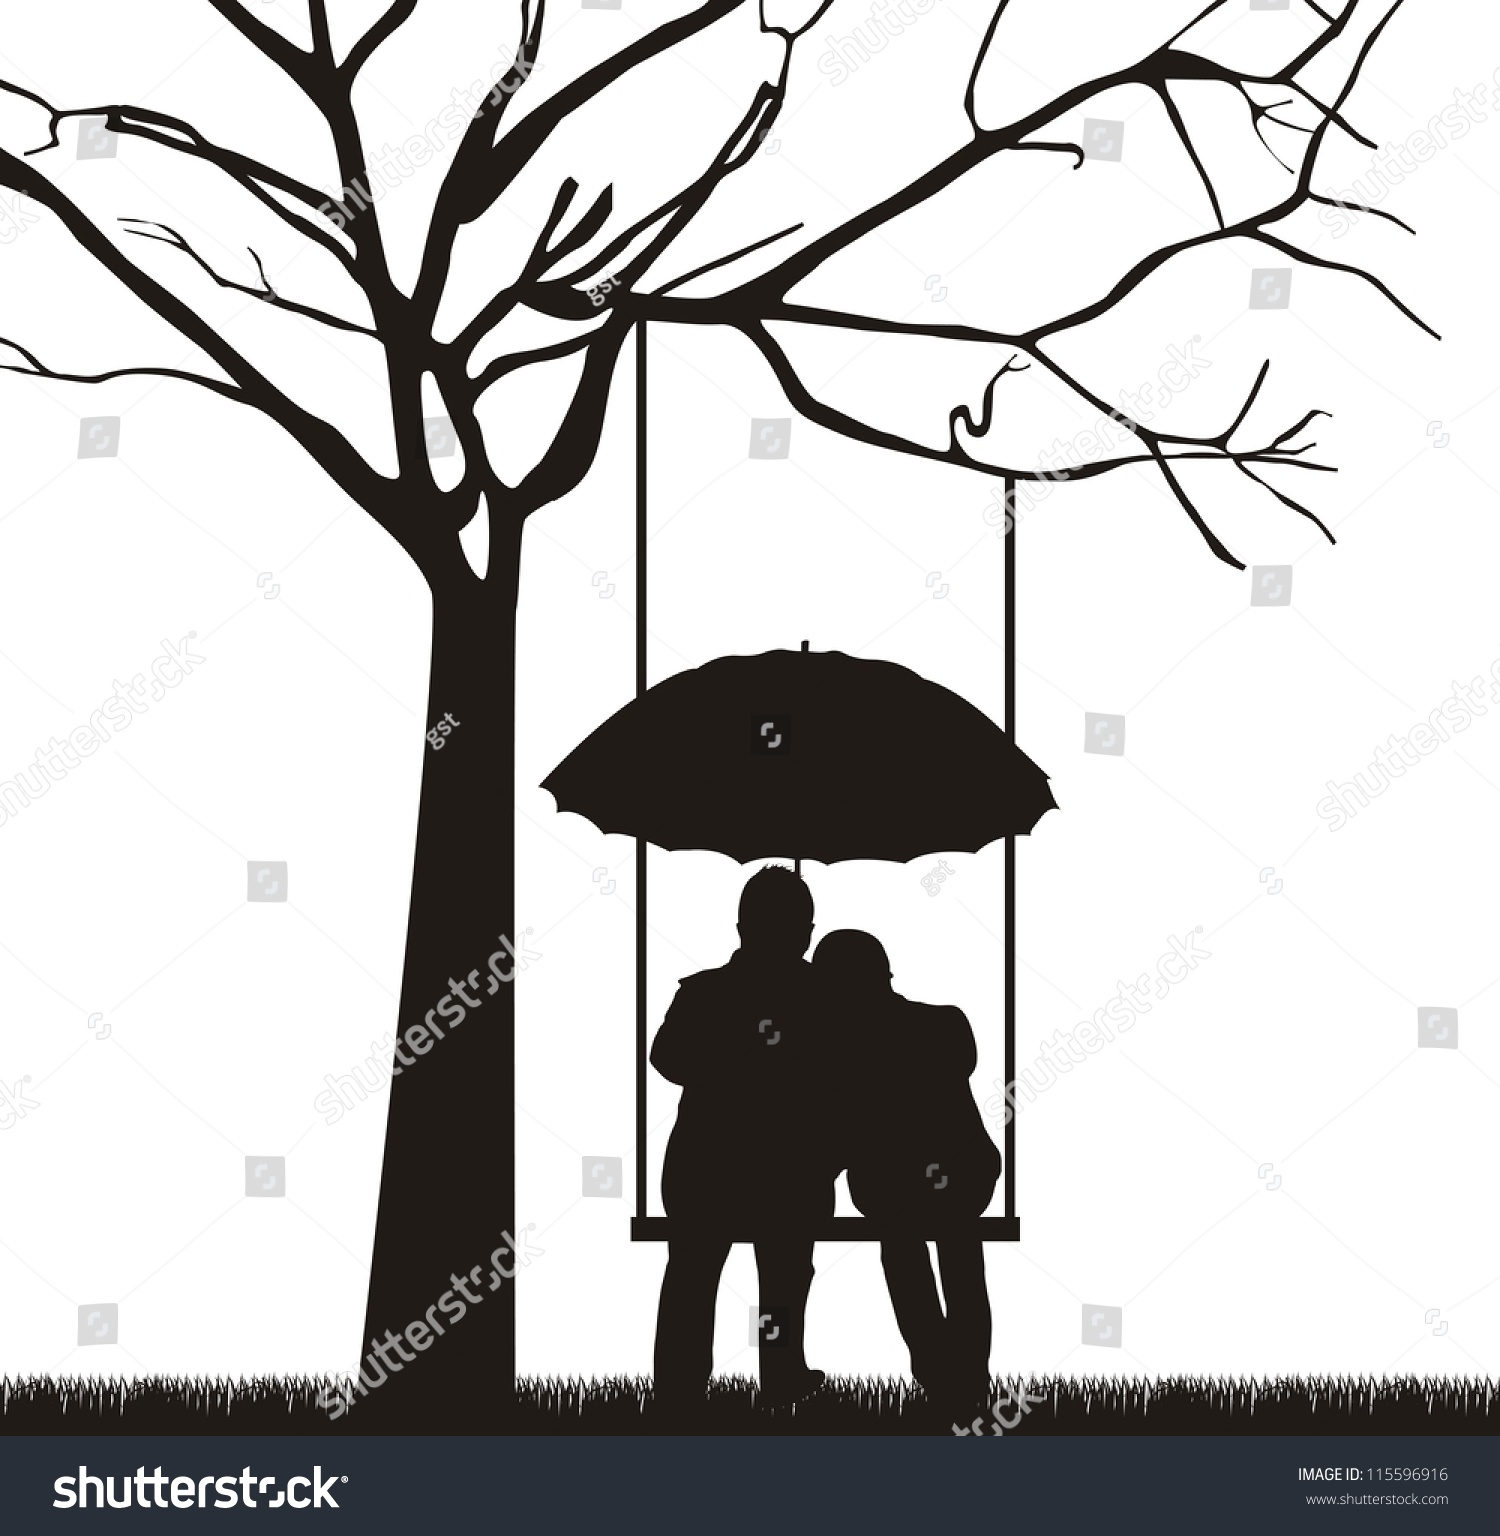 Couple Under Tree Umbrella White Background Stock Vector 115596916 - Shutterstock